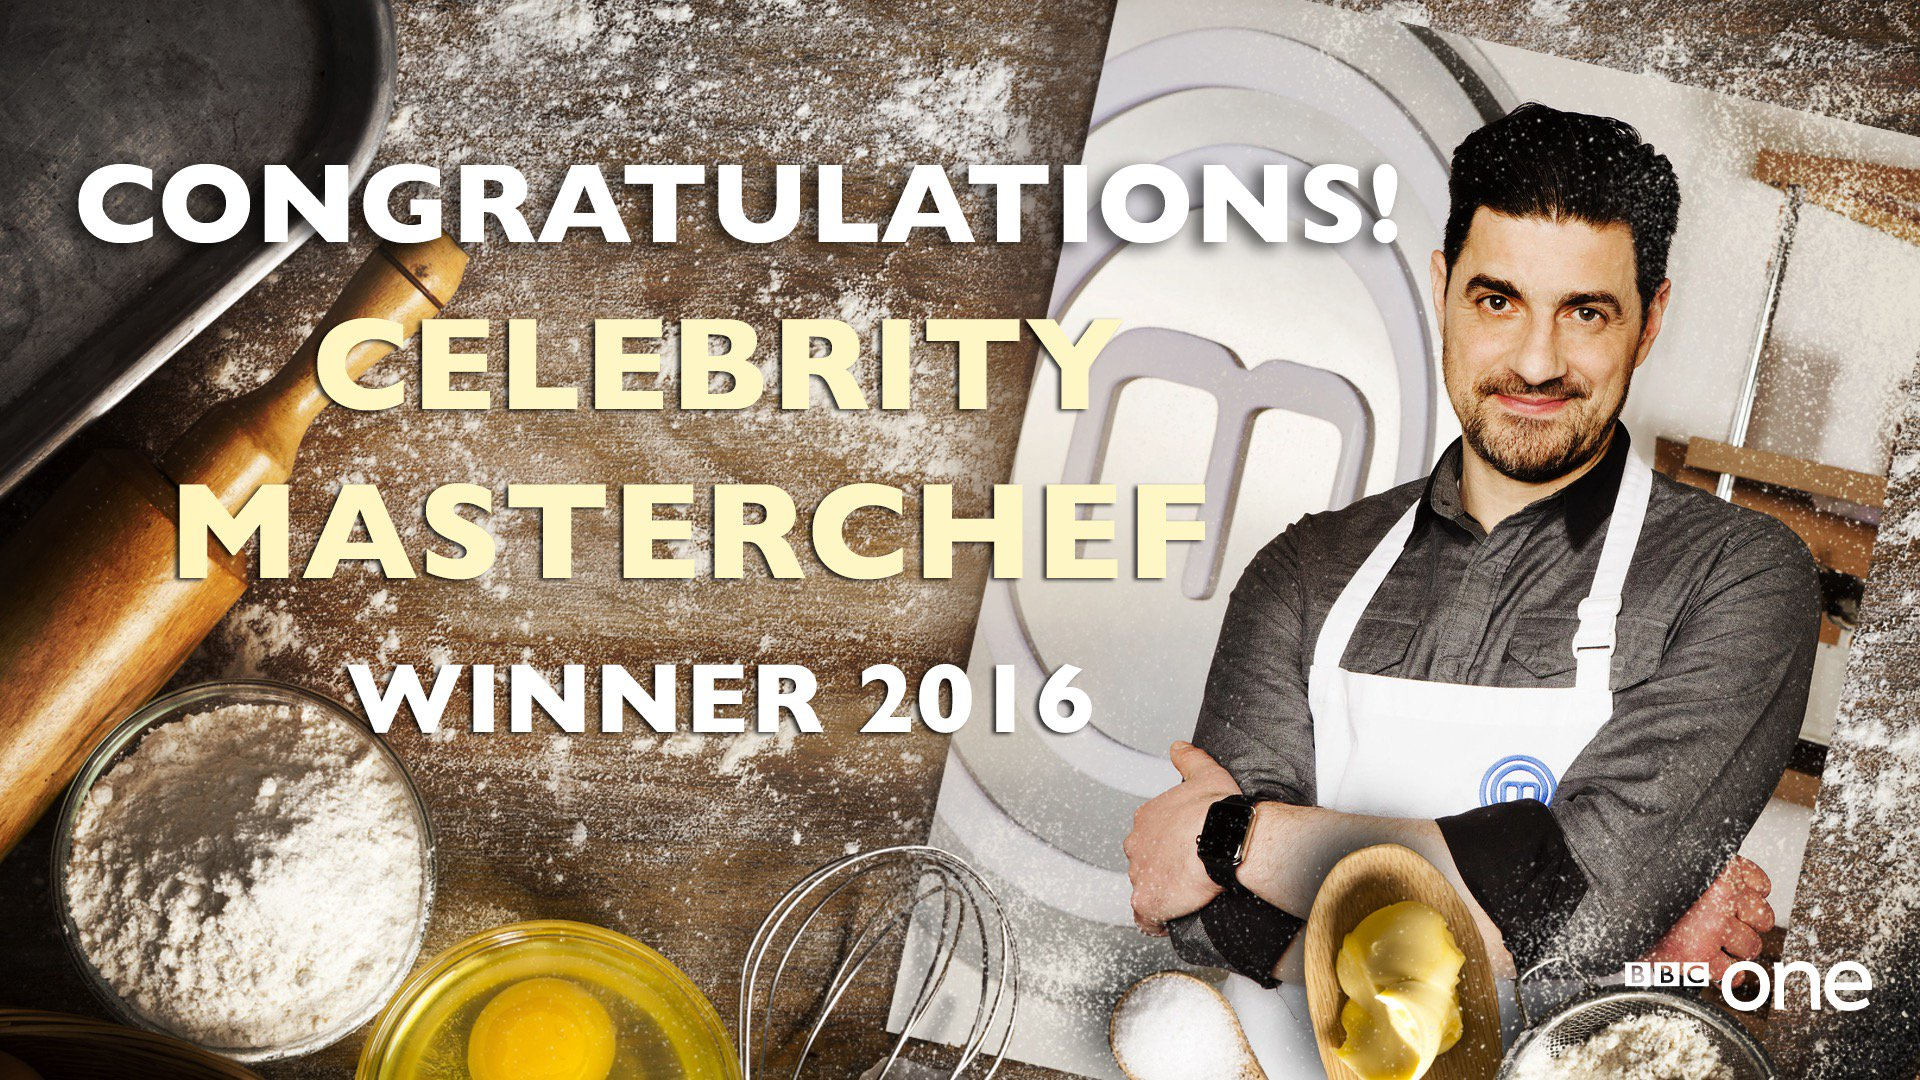 Congrats to my pal RT @BBCOne: What a winner! Congratulations @alexisconran. #CelebrityMasterchef champion 2016. 🎉🎊🎉 https://t.co/JrC38F069S